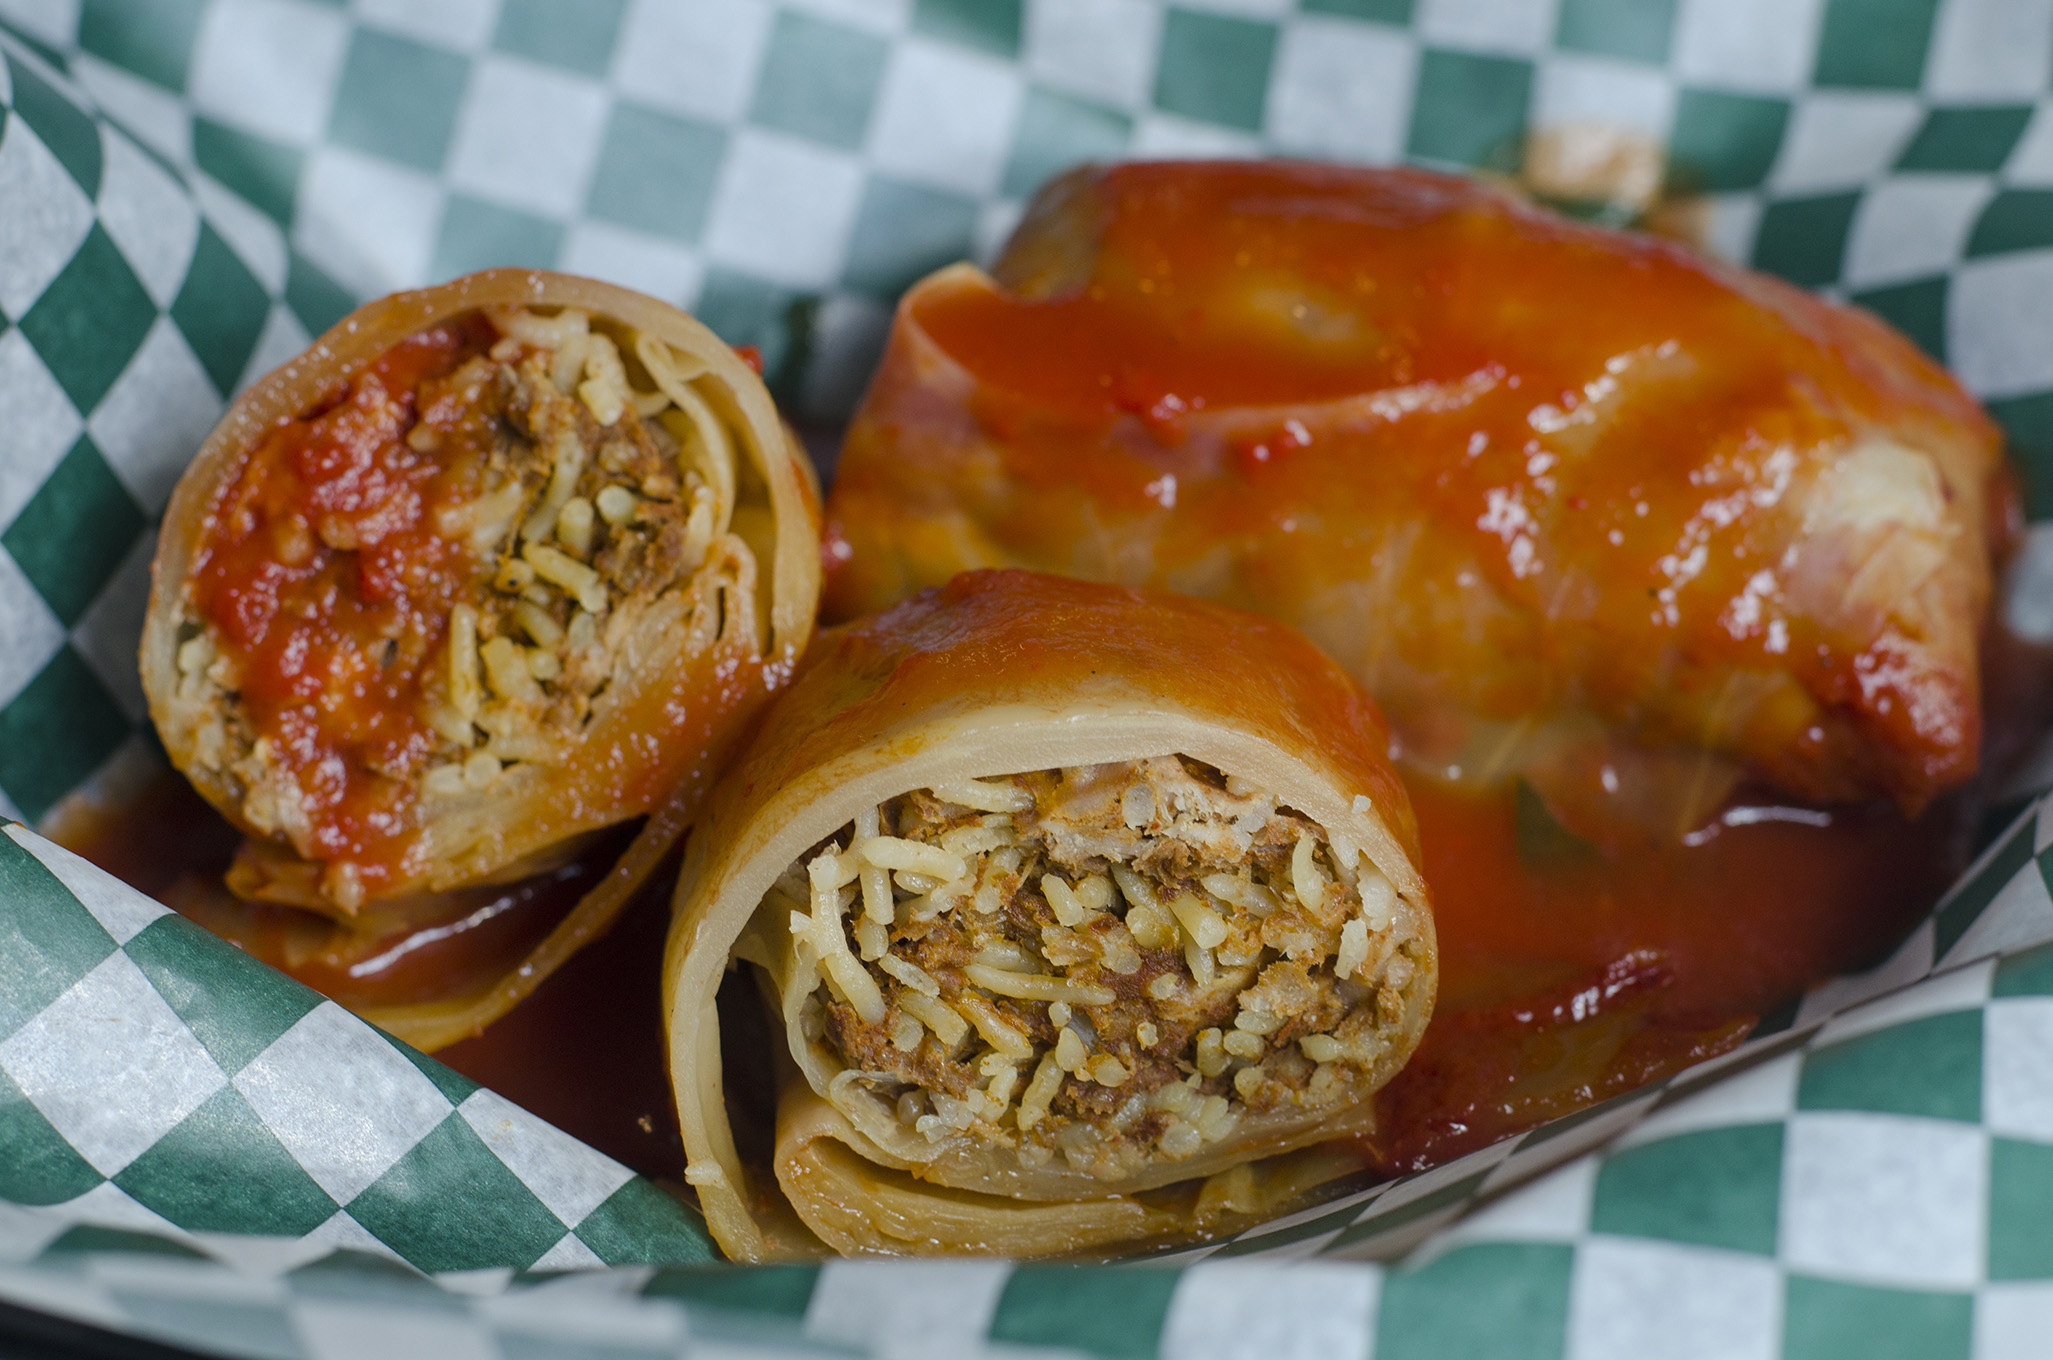 Cabbage rolls from Little Foot Foods in Windsor, Ontario.